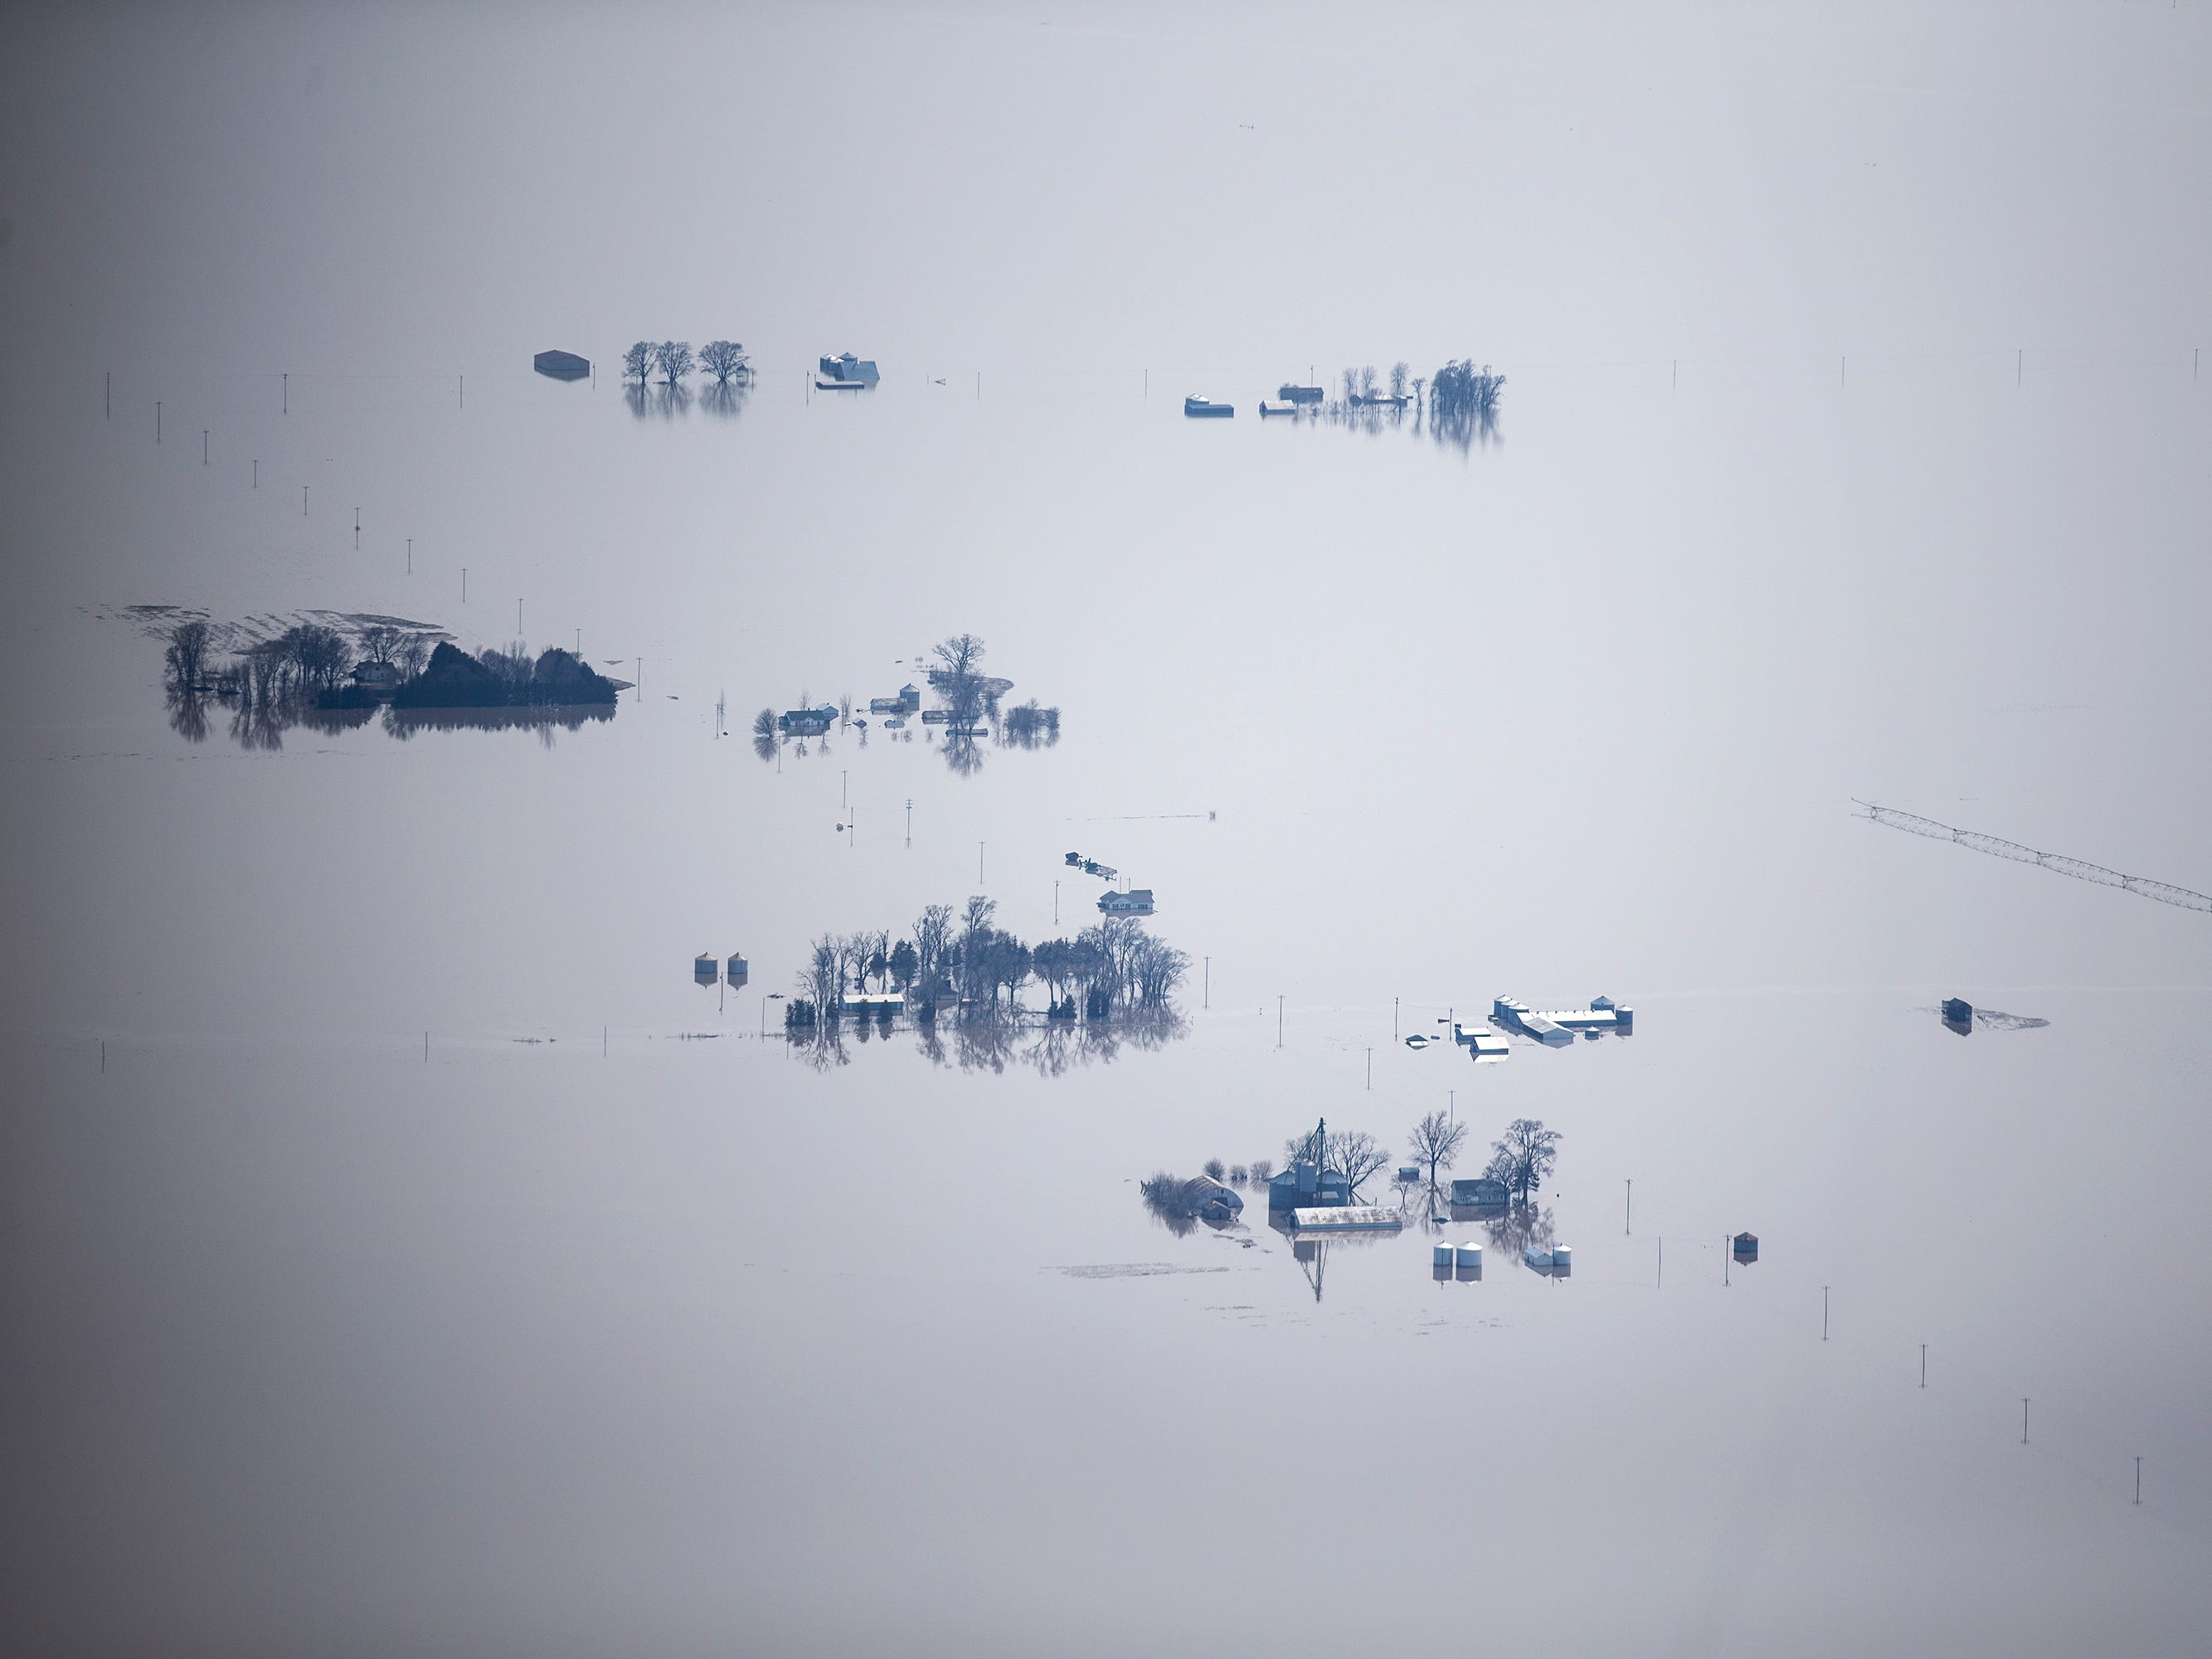 Floodwater from the Missouri River inundates cities and farmland on the western edge of Iowa on March 18, 2019.